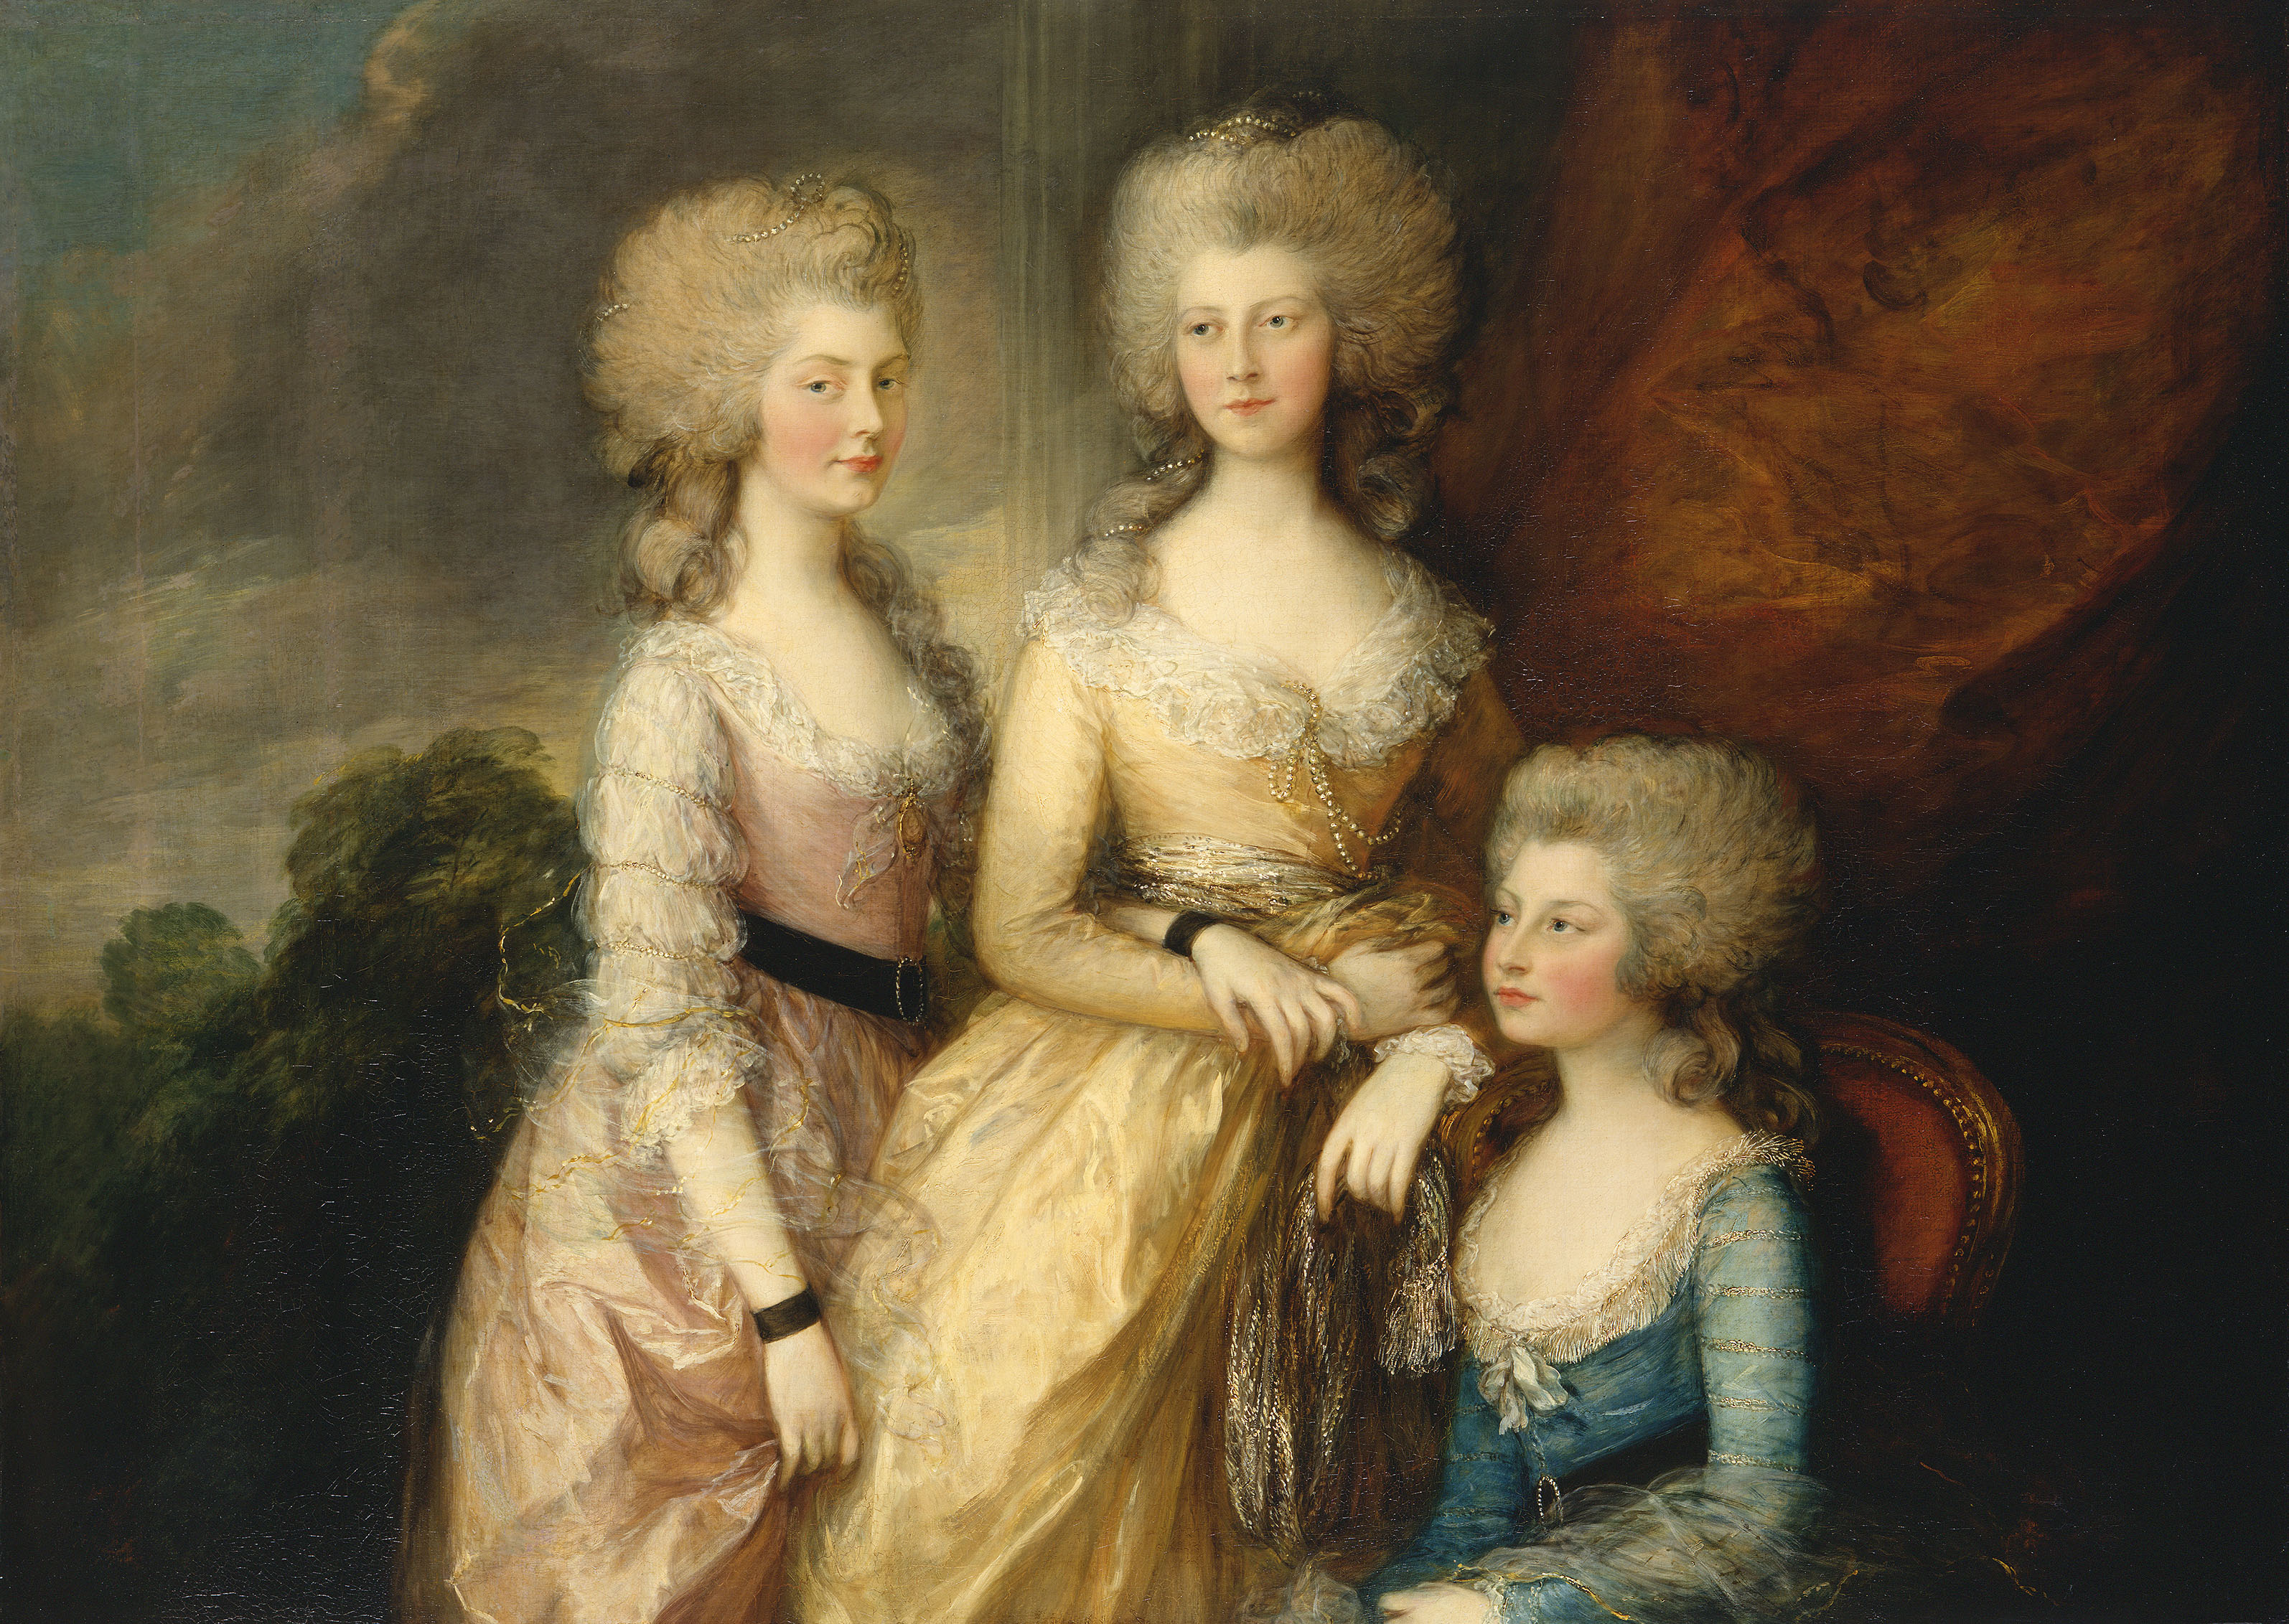 Thomas Gainsborough, The Three Eldest Princesses: Charlotte, Princess Royal, Augusta and Elizabeth, 1783-84